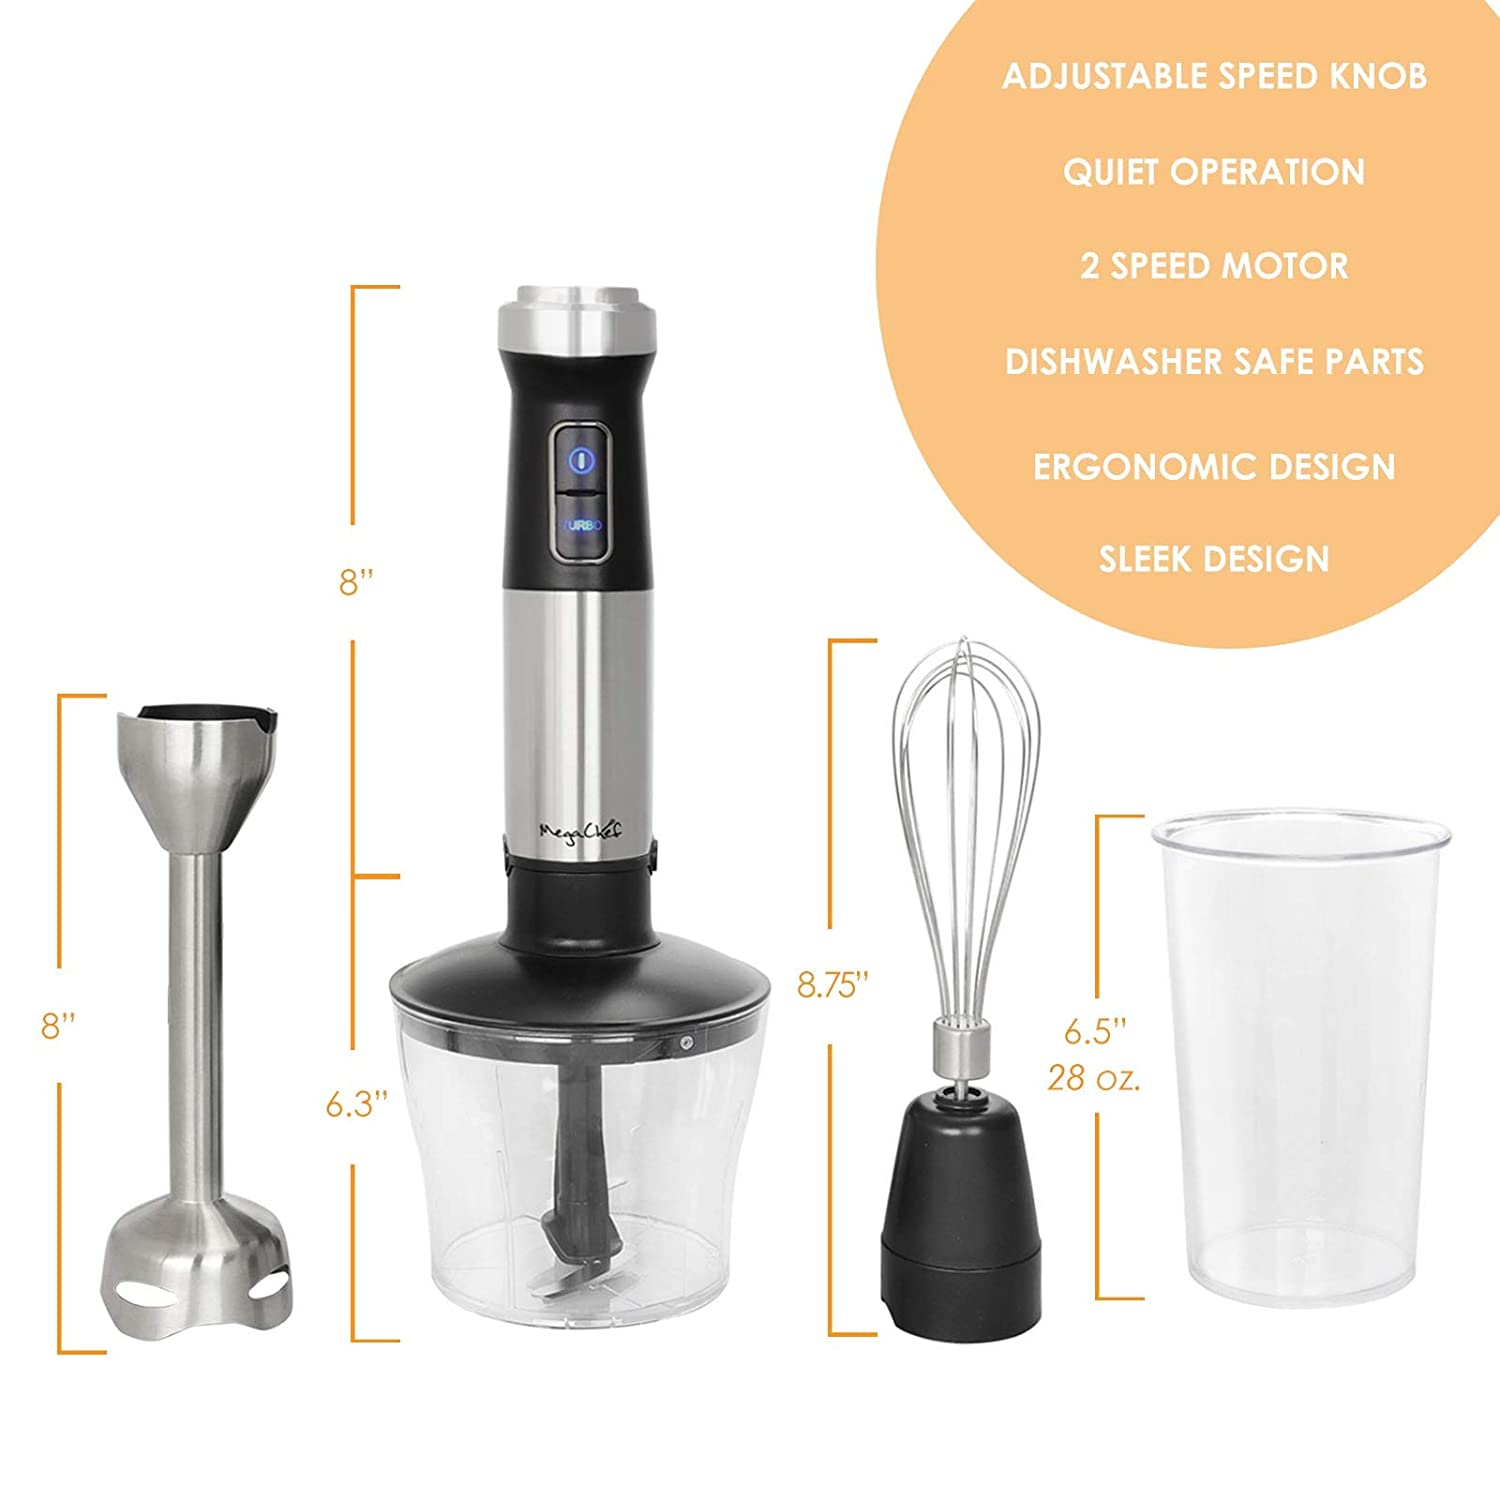 Amazon.com: MegaChef MC-158C 4 in 1 Multipurpose Immersion Hand Blender with Speed Control and Accessories, 4in1 Silver: Kitchen & Dining